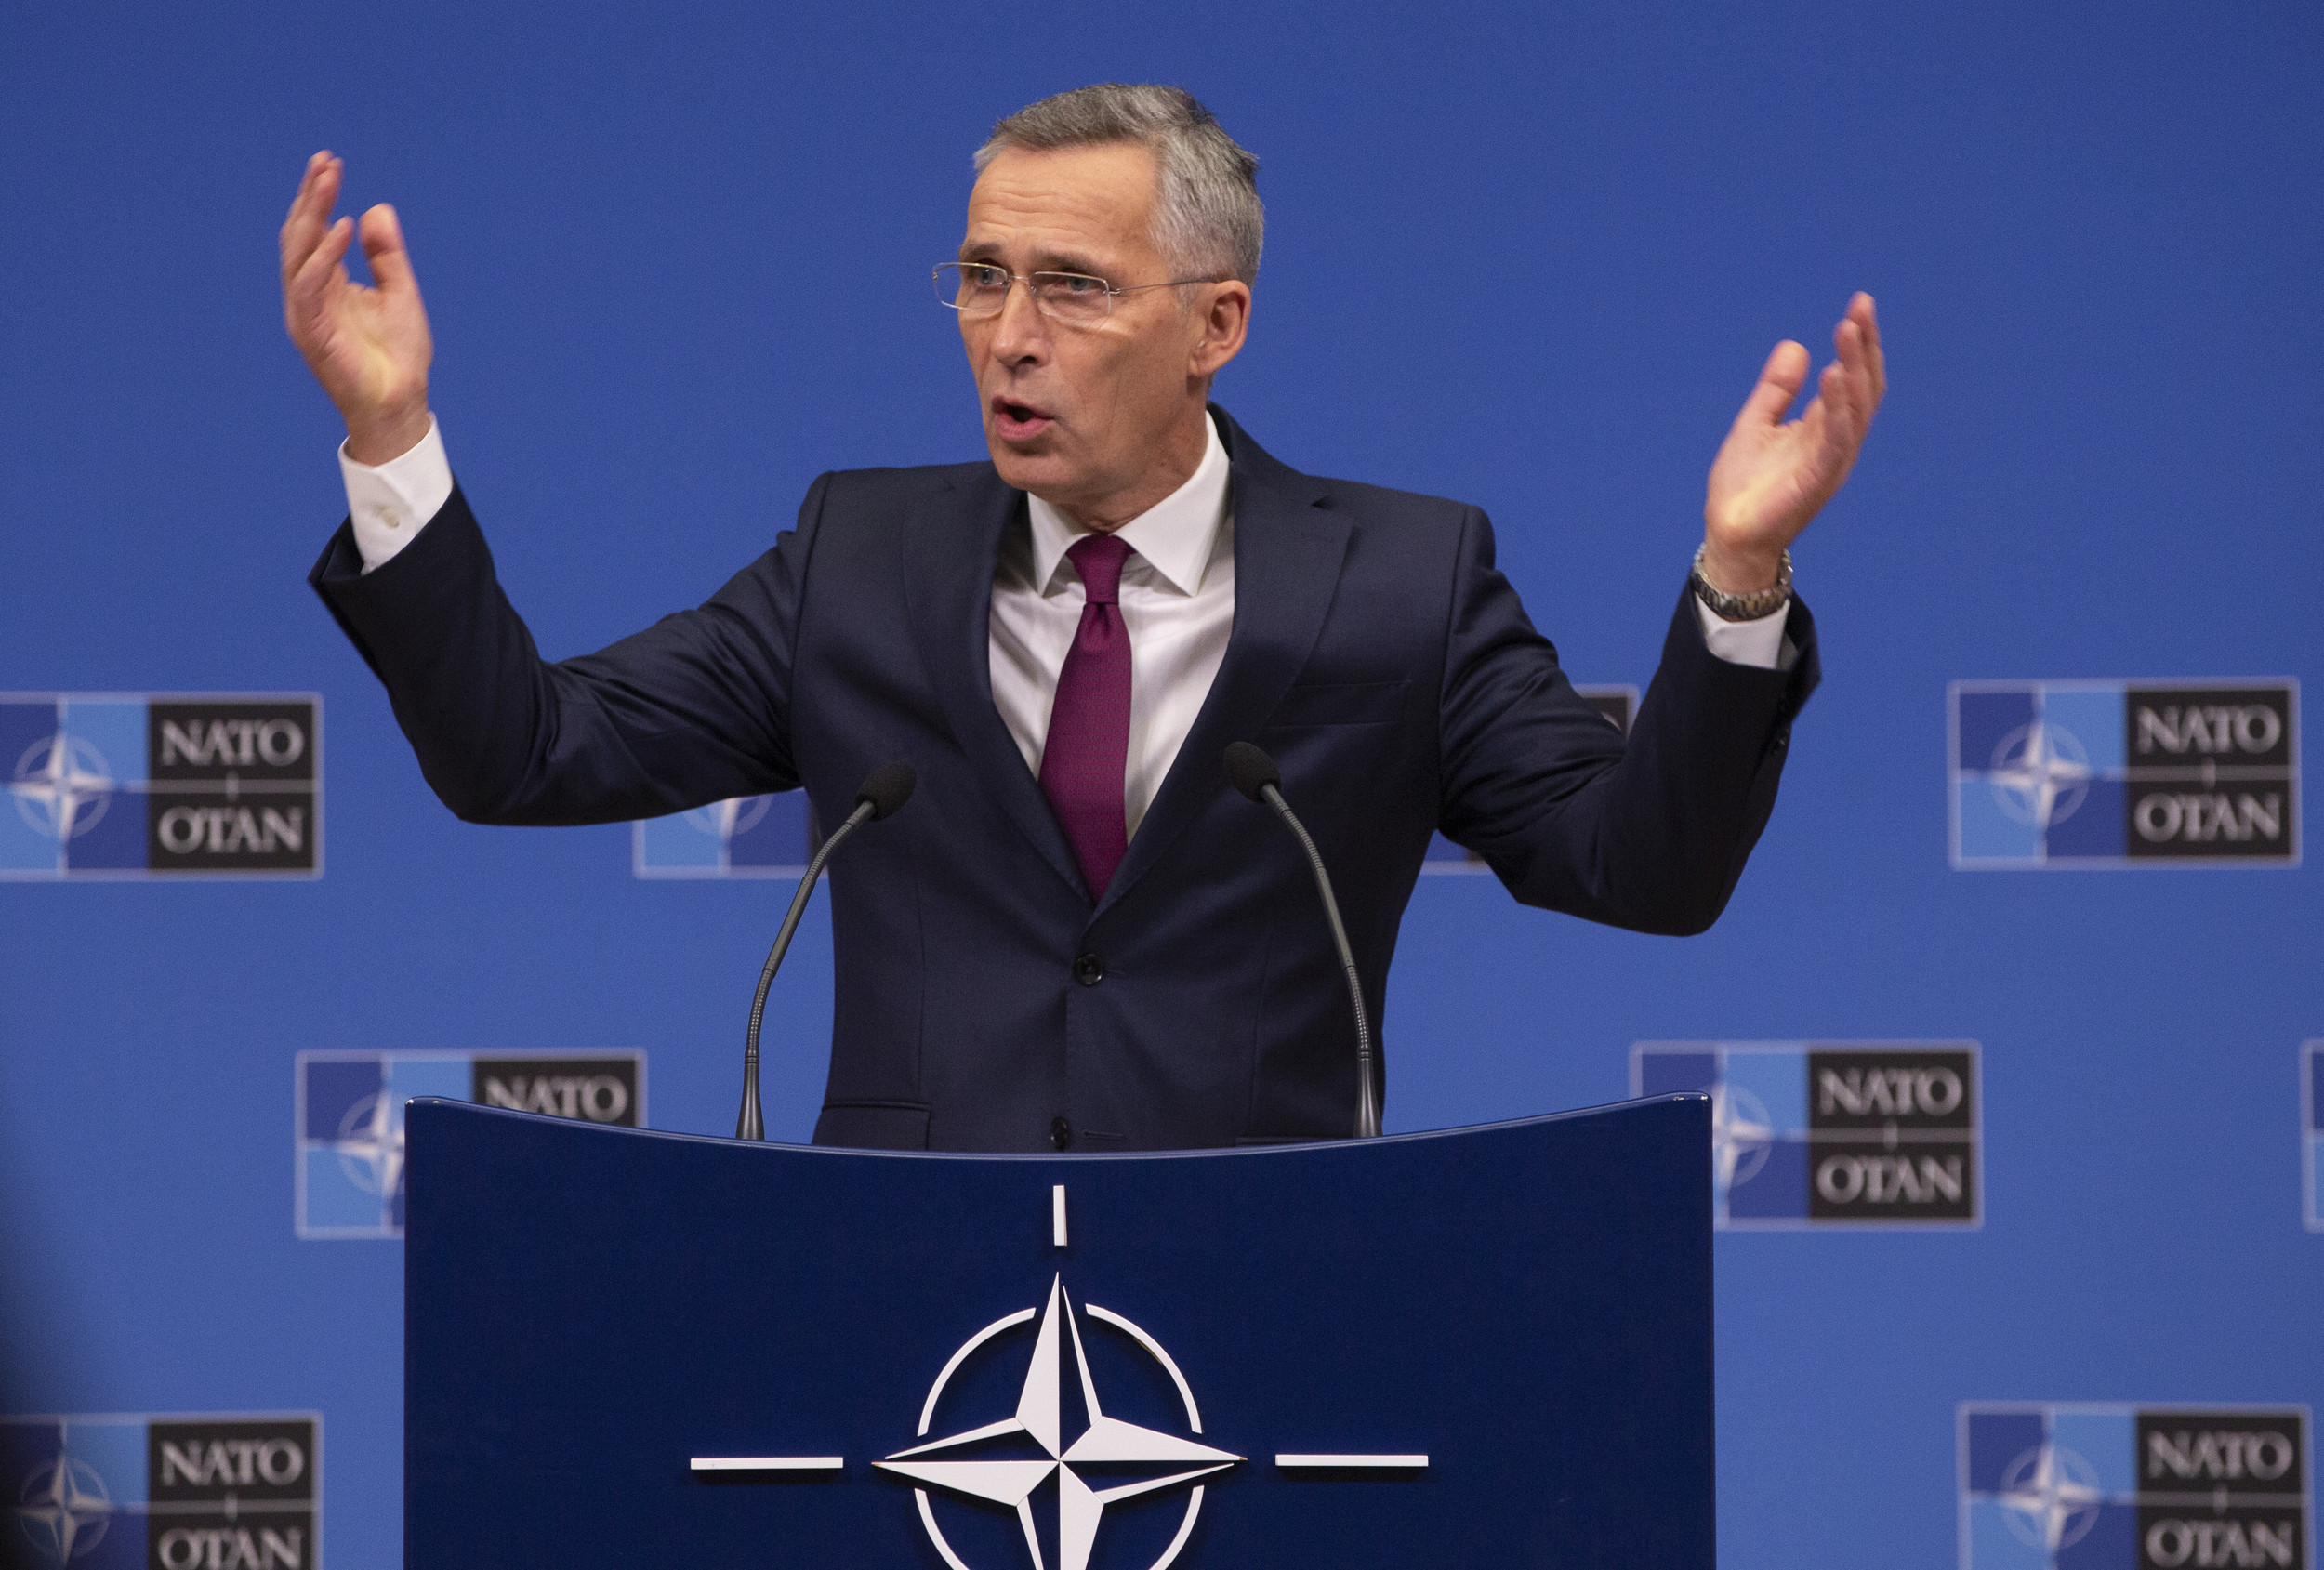 NATO Under Friendly Fire As Leaders Ready For London Summit